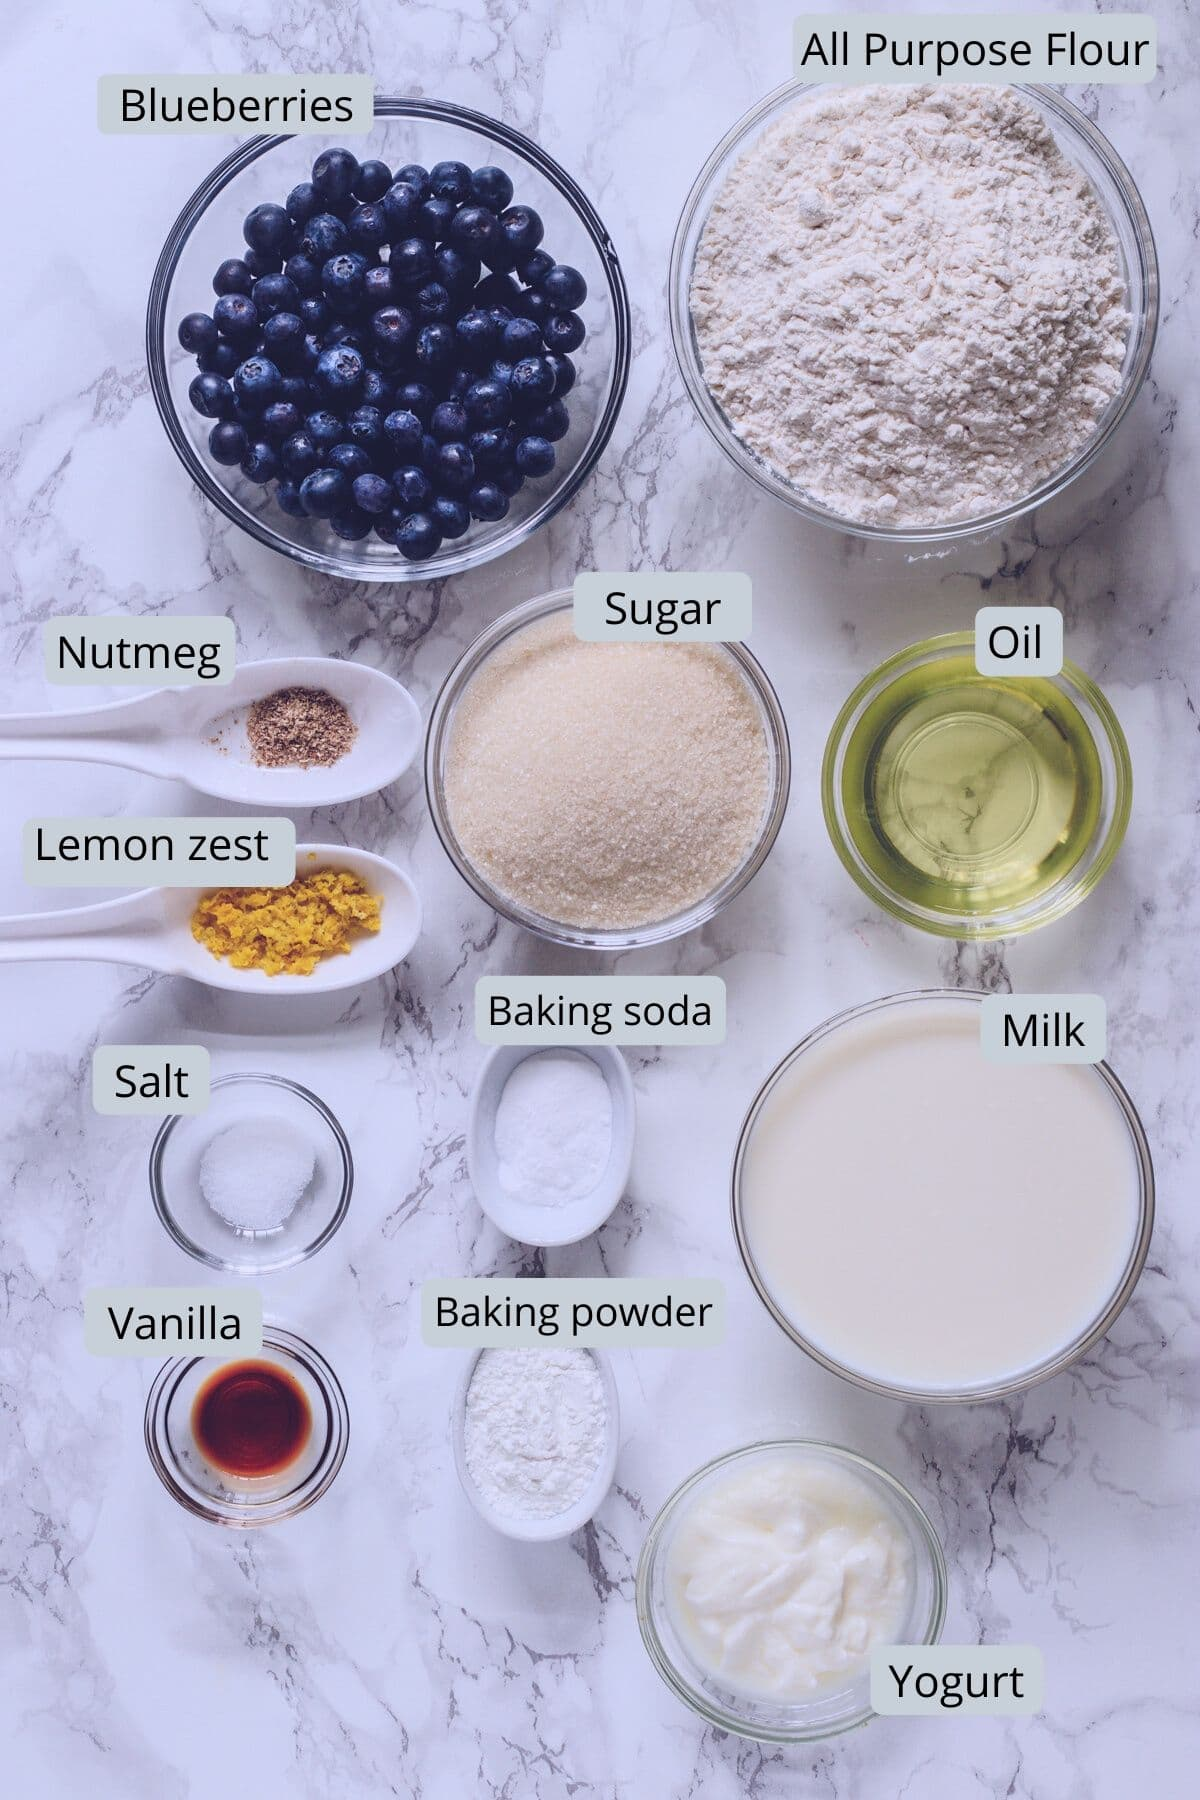 Eggless blueberry muffins ingredients into individual bowls